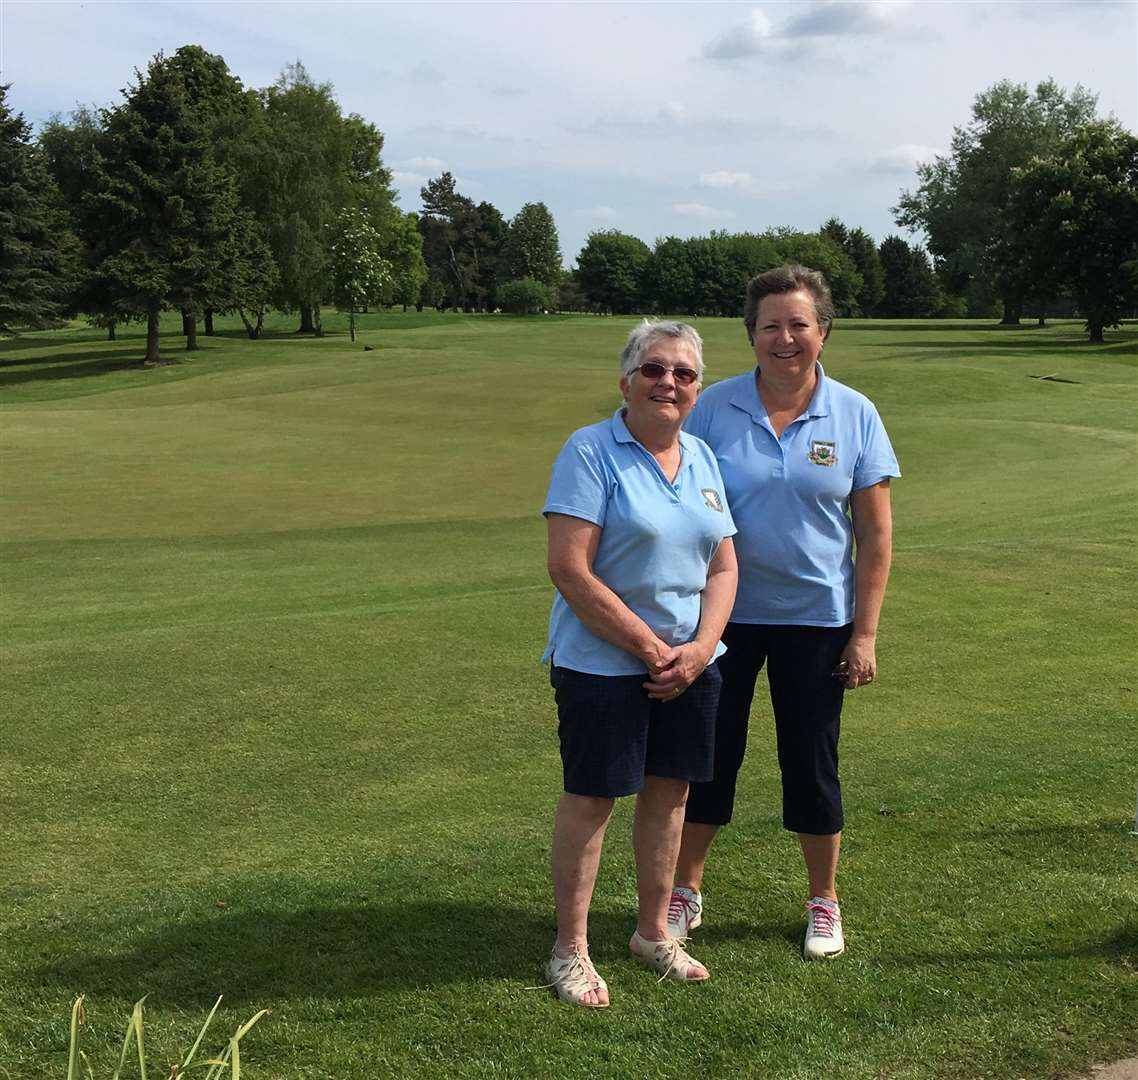 Burghley Park's Nicky Plumtree and Jane Saggers, who defeated Belton Park in round three of the Daily Mail Foursomes knockout match. (2211390)